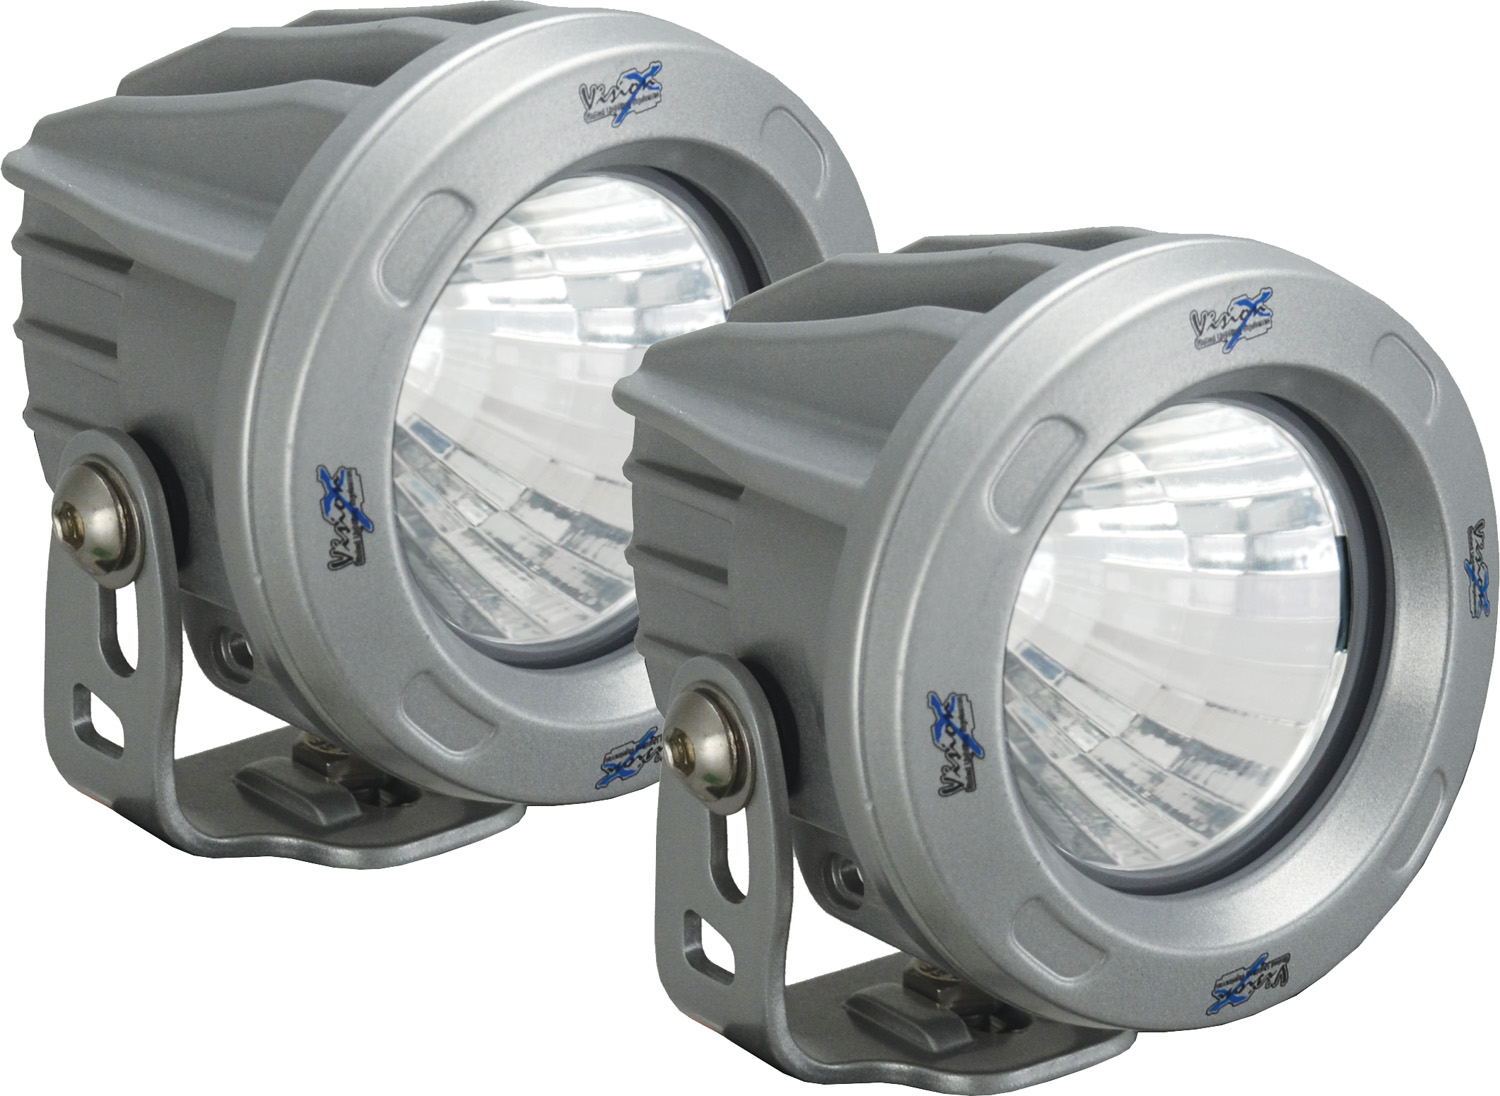 OPTIMUS ROUND SILVER 1 10W LED 10? NARROW KIT OF 2 LIGHTS